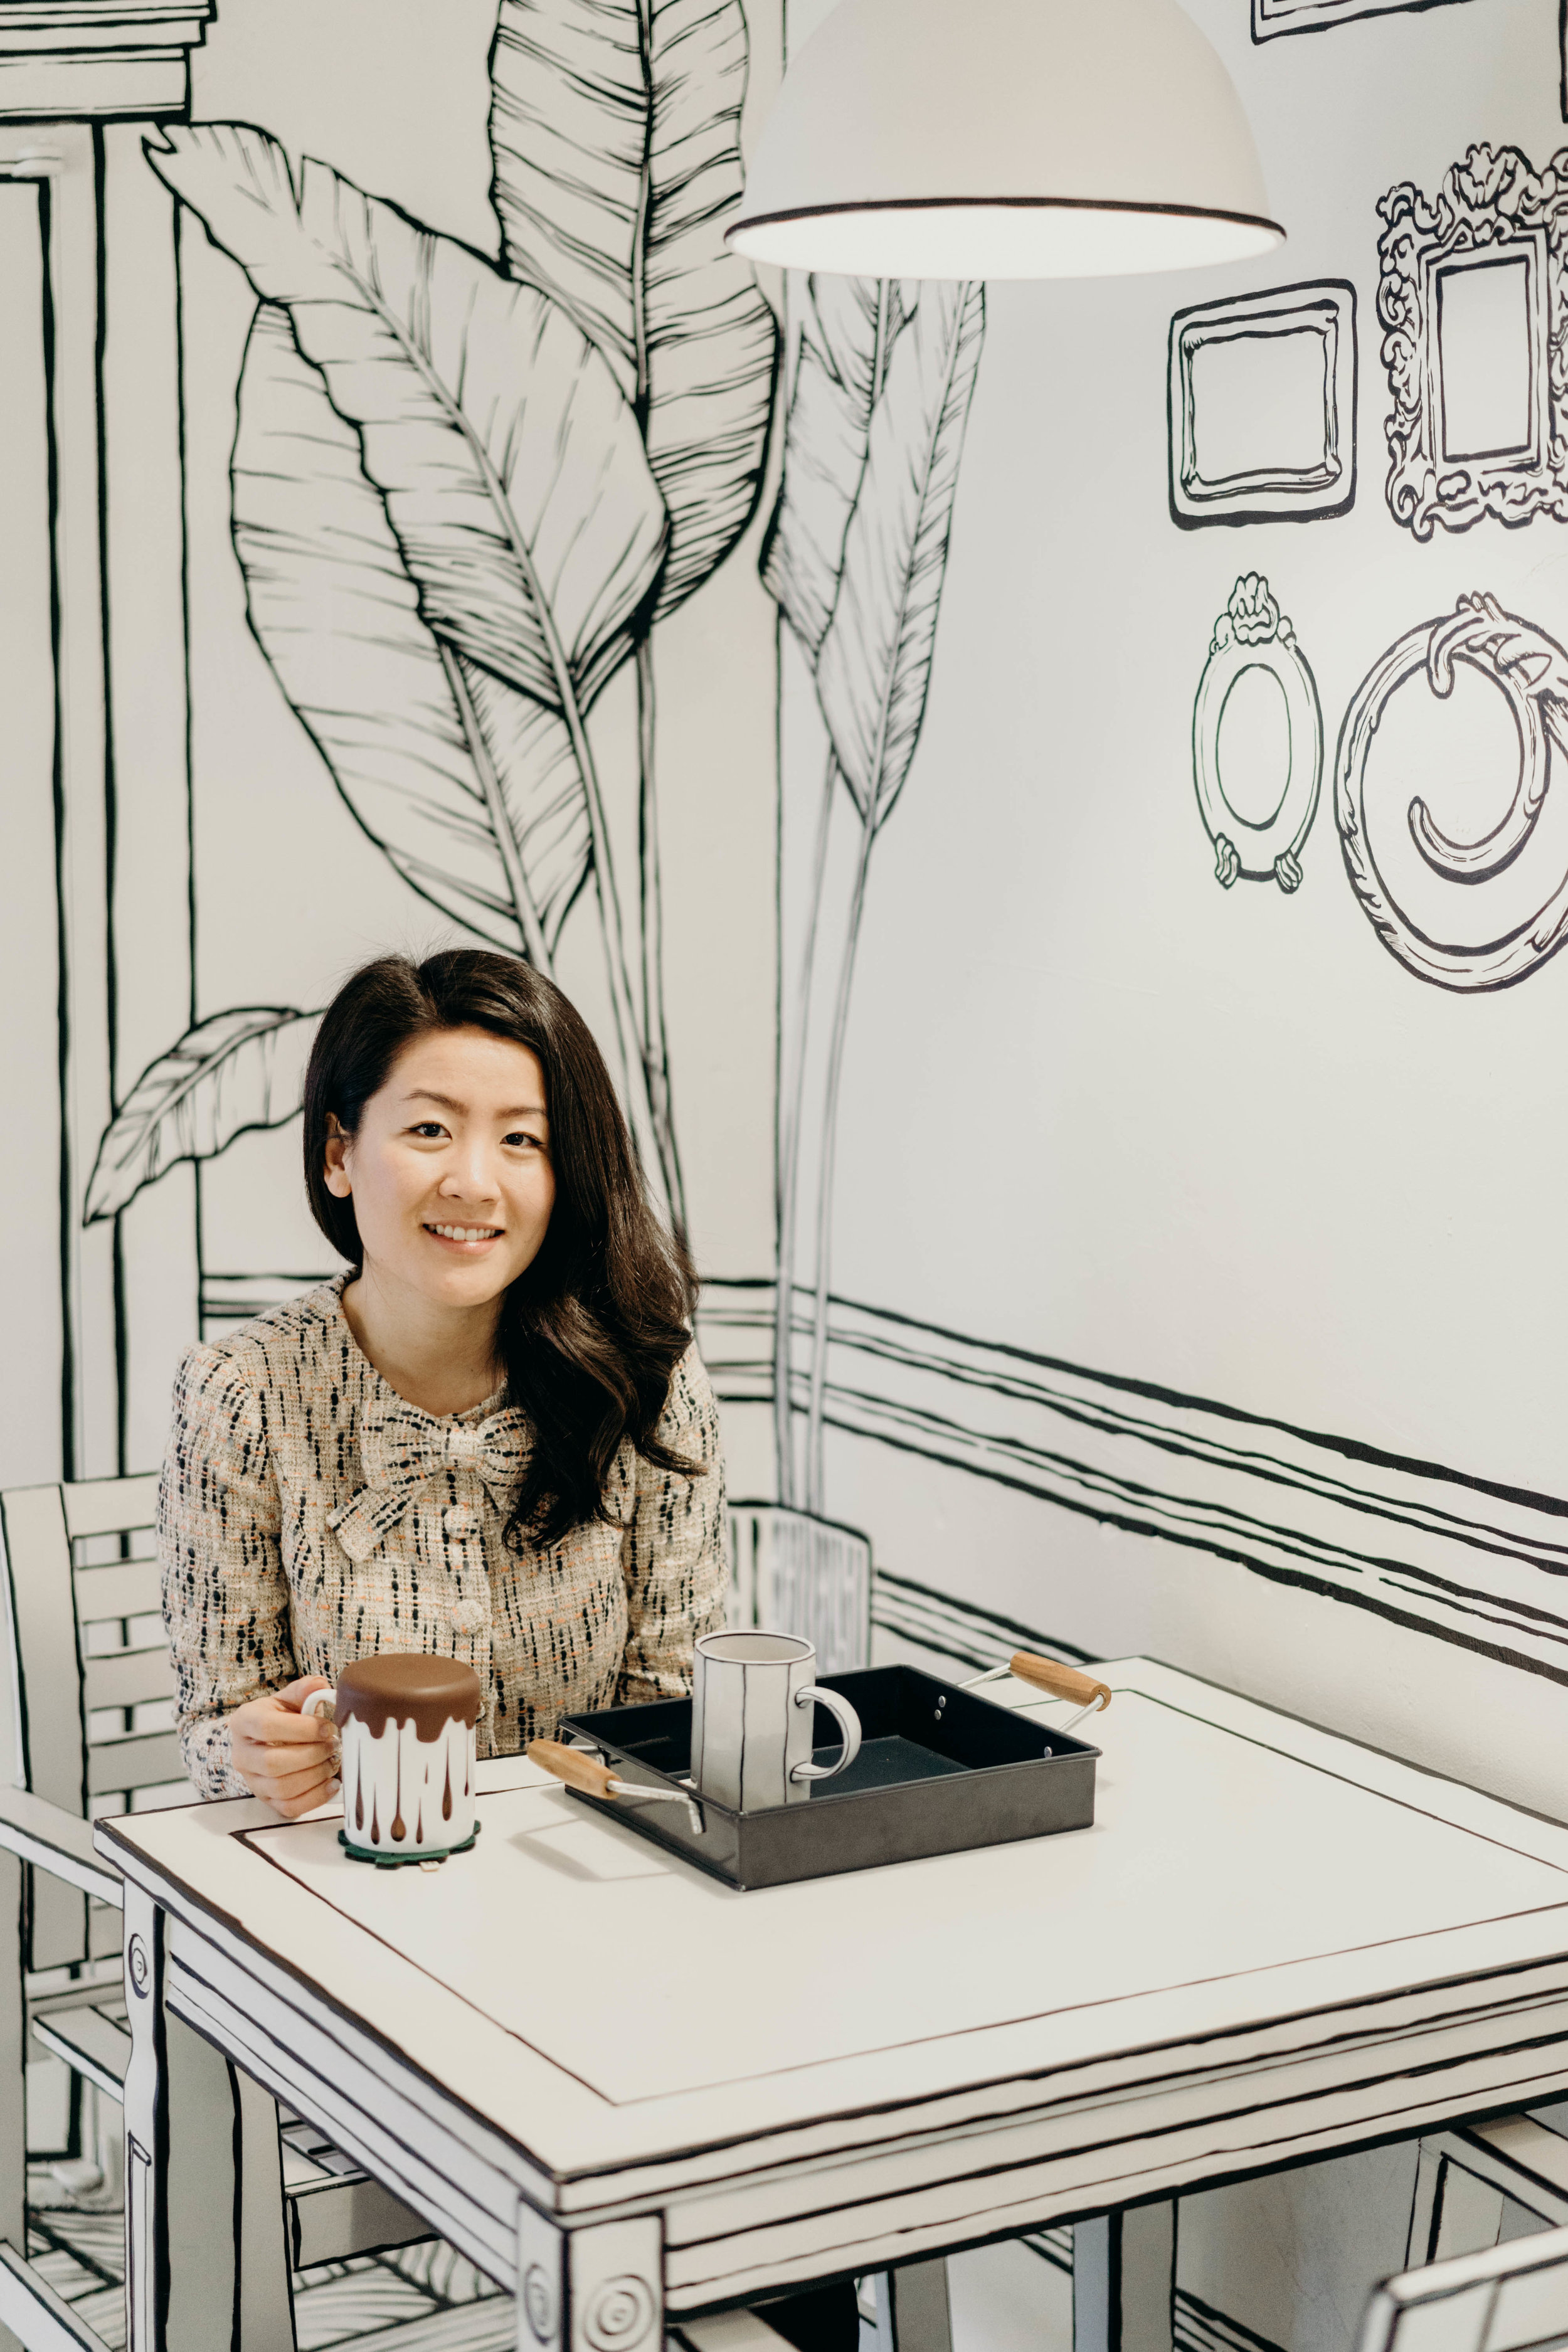 The Seoul Cartoon Cafe: Cafe Yeonnam-dong 223-14 | On the Street Where We Live ( aretherelilactrees.com )